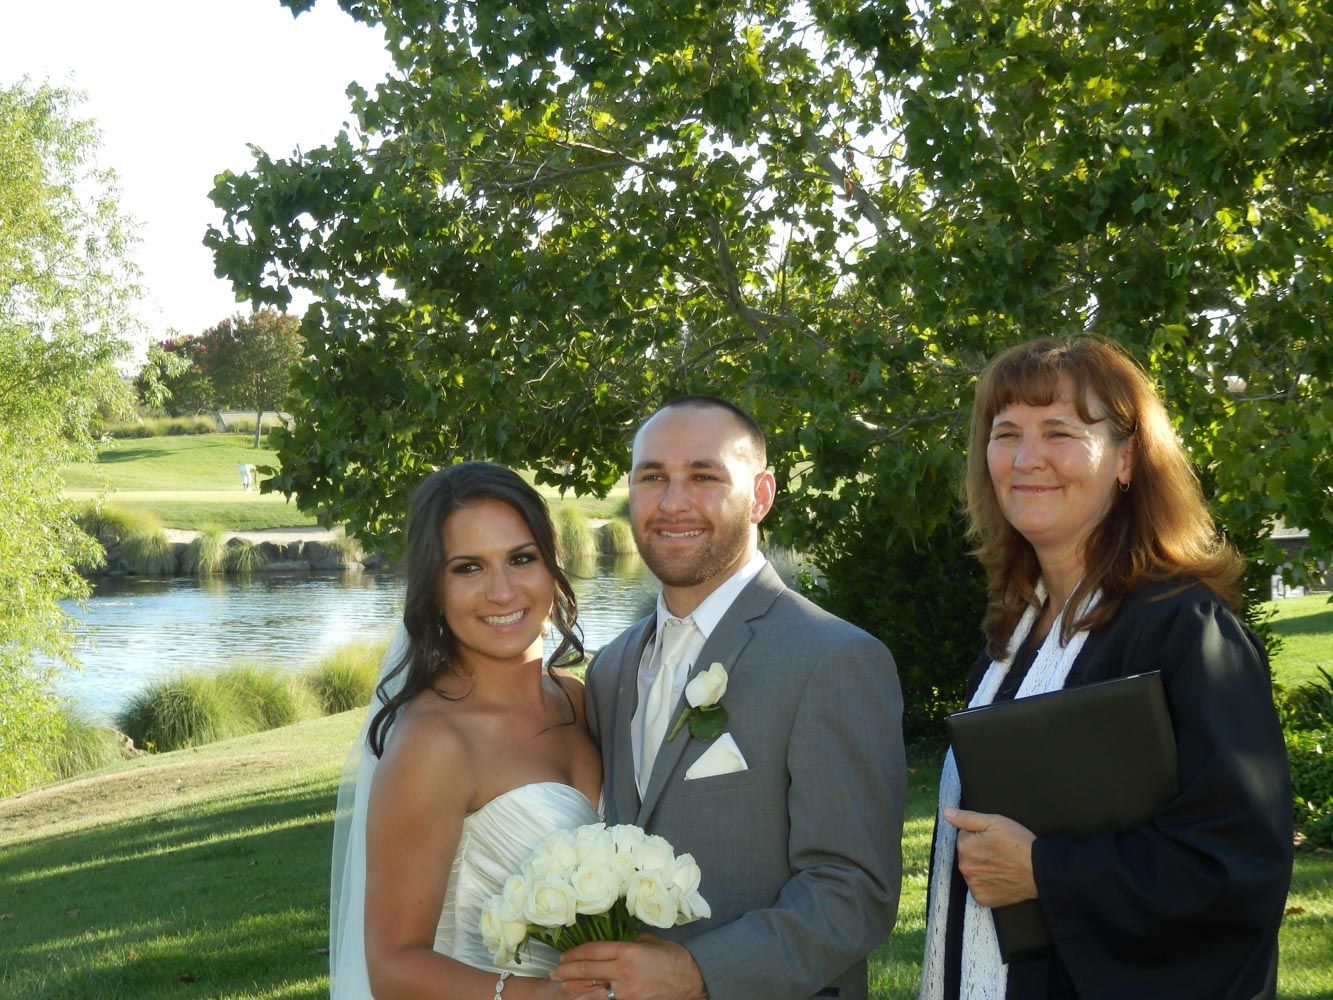 Smiling bride, groom and minister with golf course and water feature in background